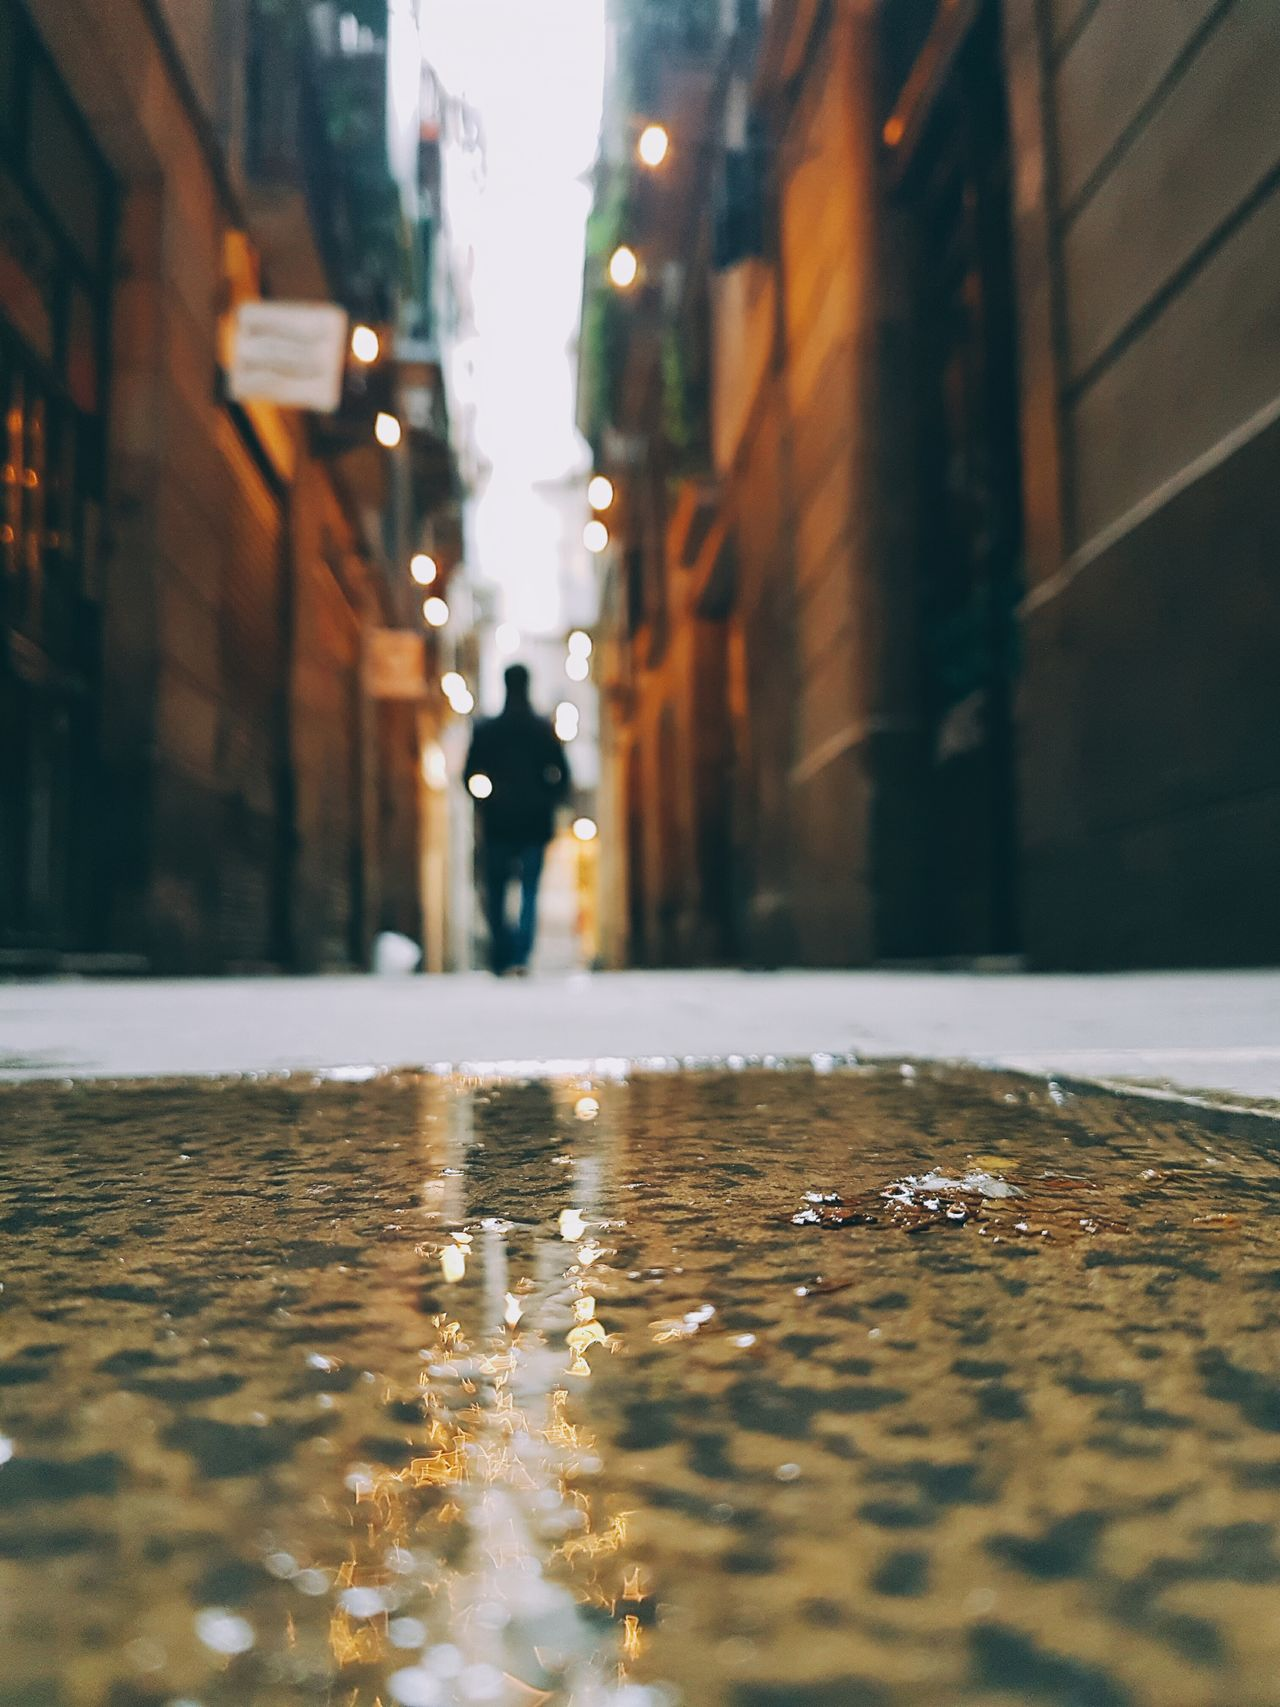 Street City Wet Outdoors Building Exterior Reflection Water City Life Built Structure Architecture Puddle Sunset Surface Level Day Nature No People Urbanphotography EyeEm Best Shots Eye4photography  City Life Travel Destinations